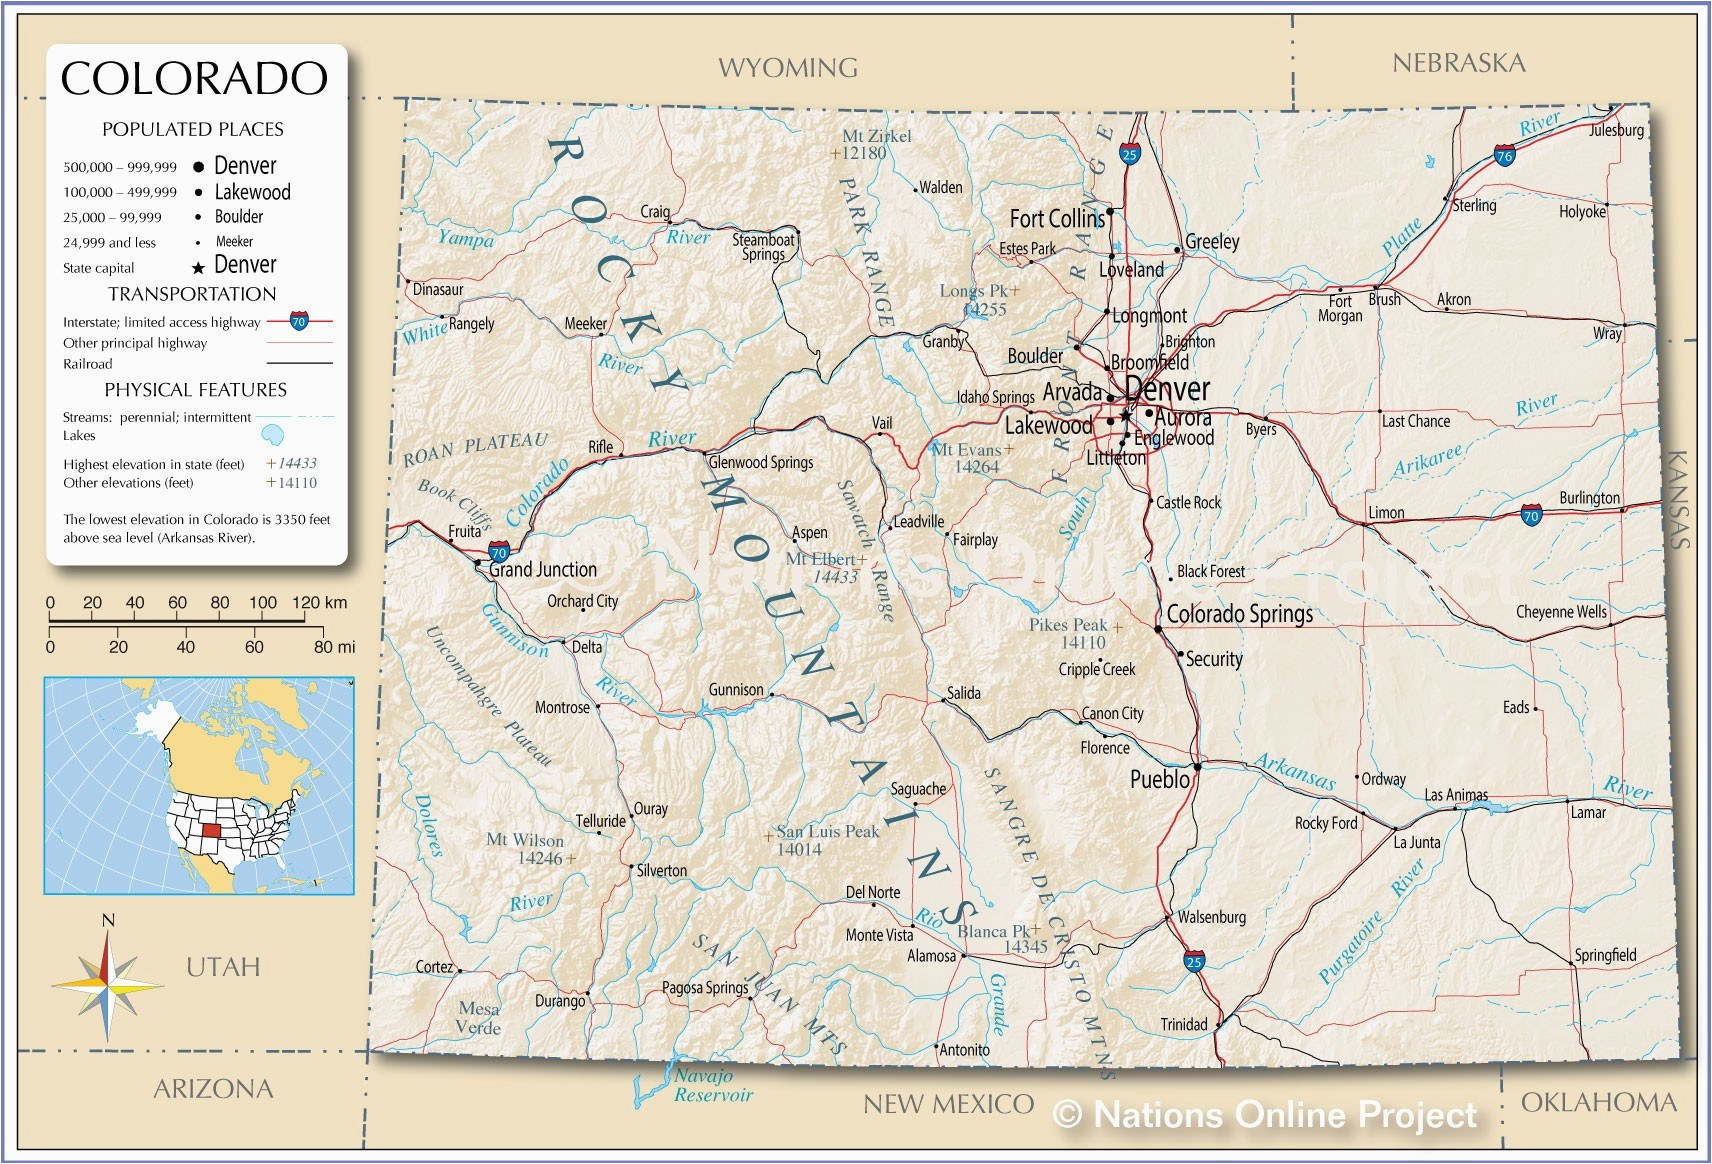 mesa arizona usa map new pueblo colorado usa map valid map od